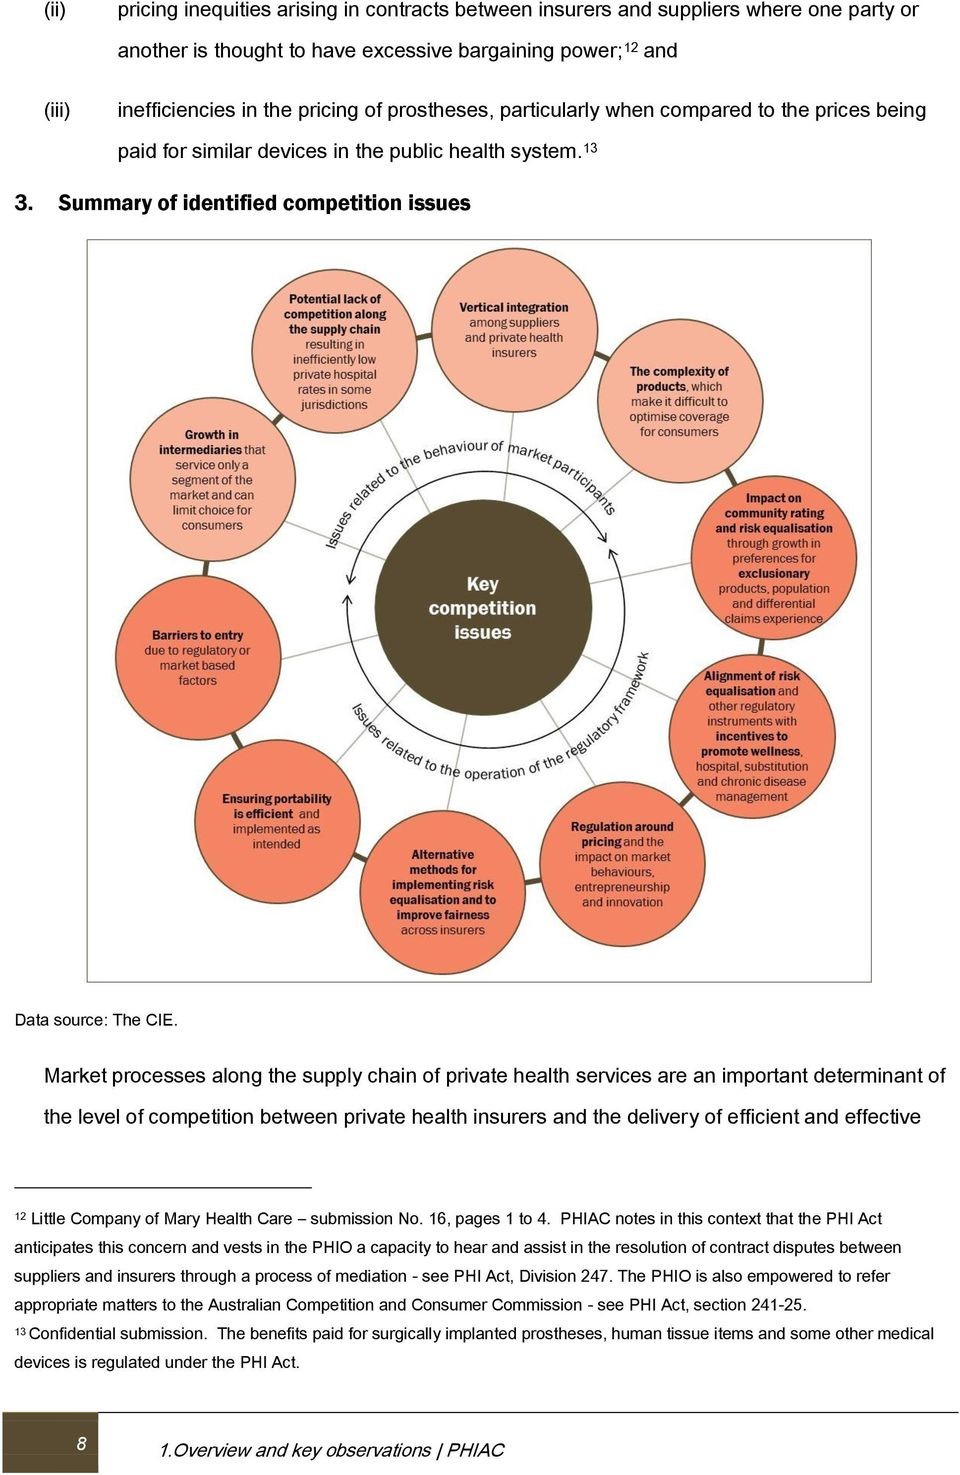 Market processes along the supply chain of private health services are an important determinant of the level of competition between private health insurers and the delivery of efficient and effective